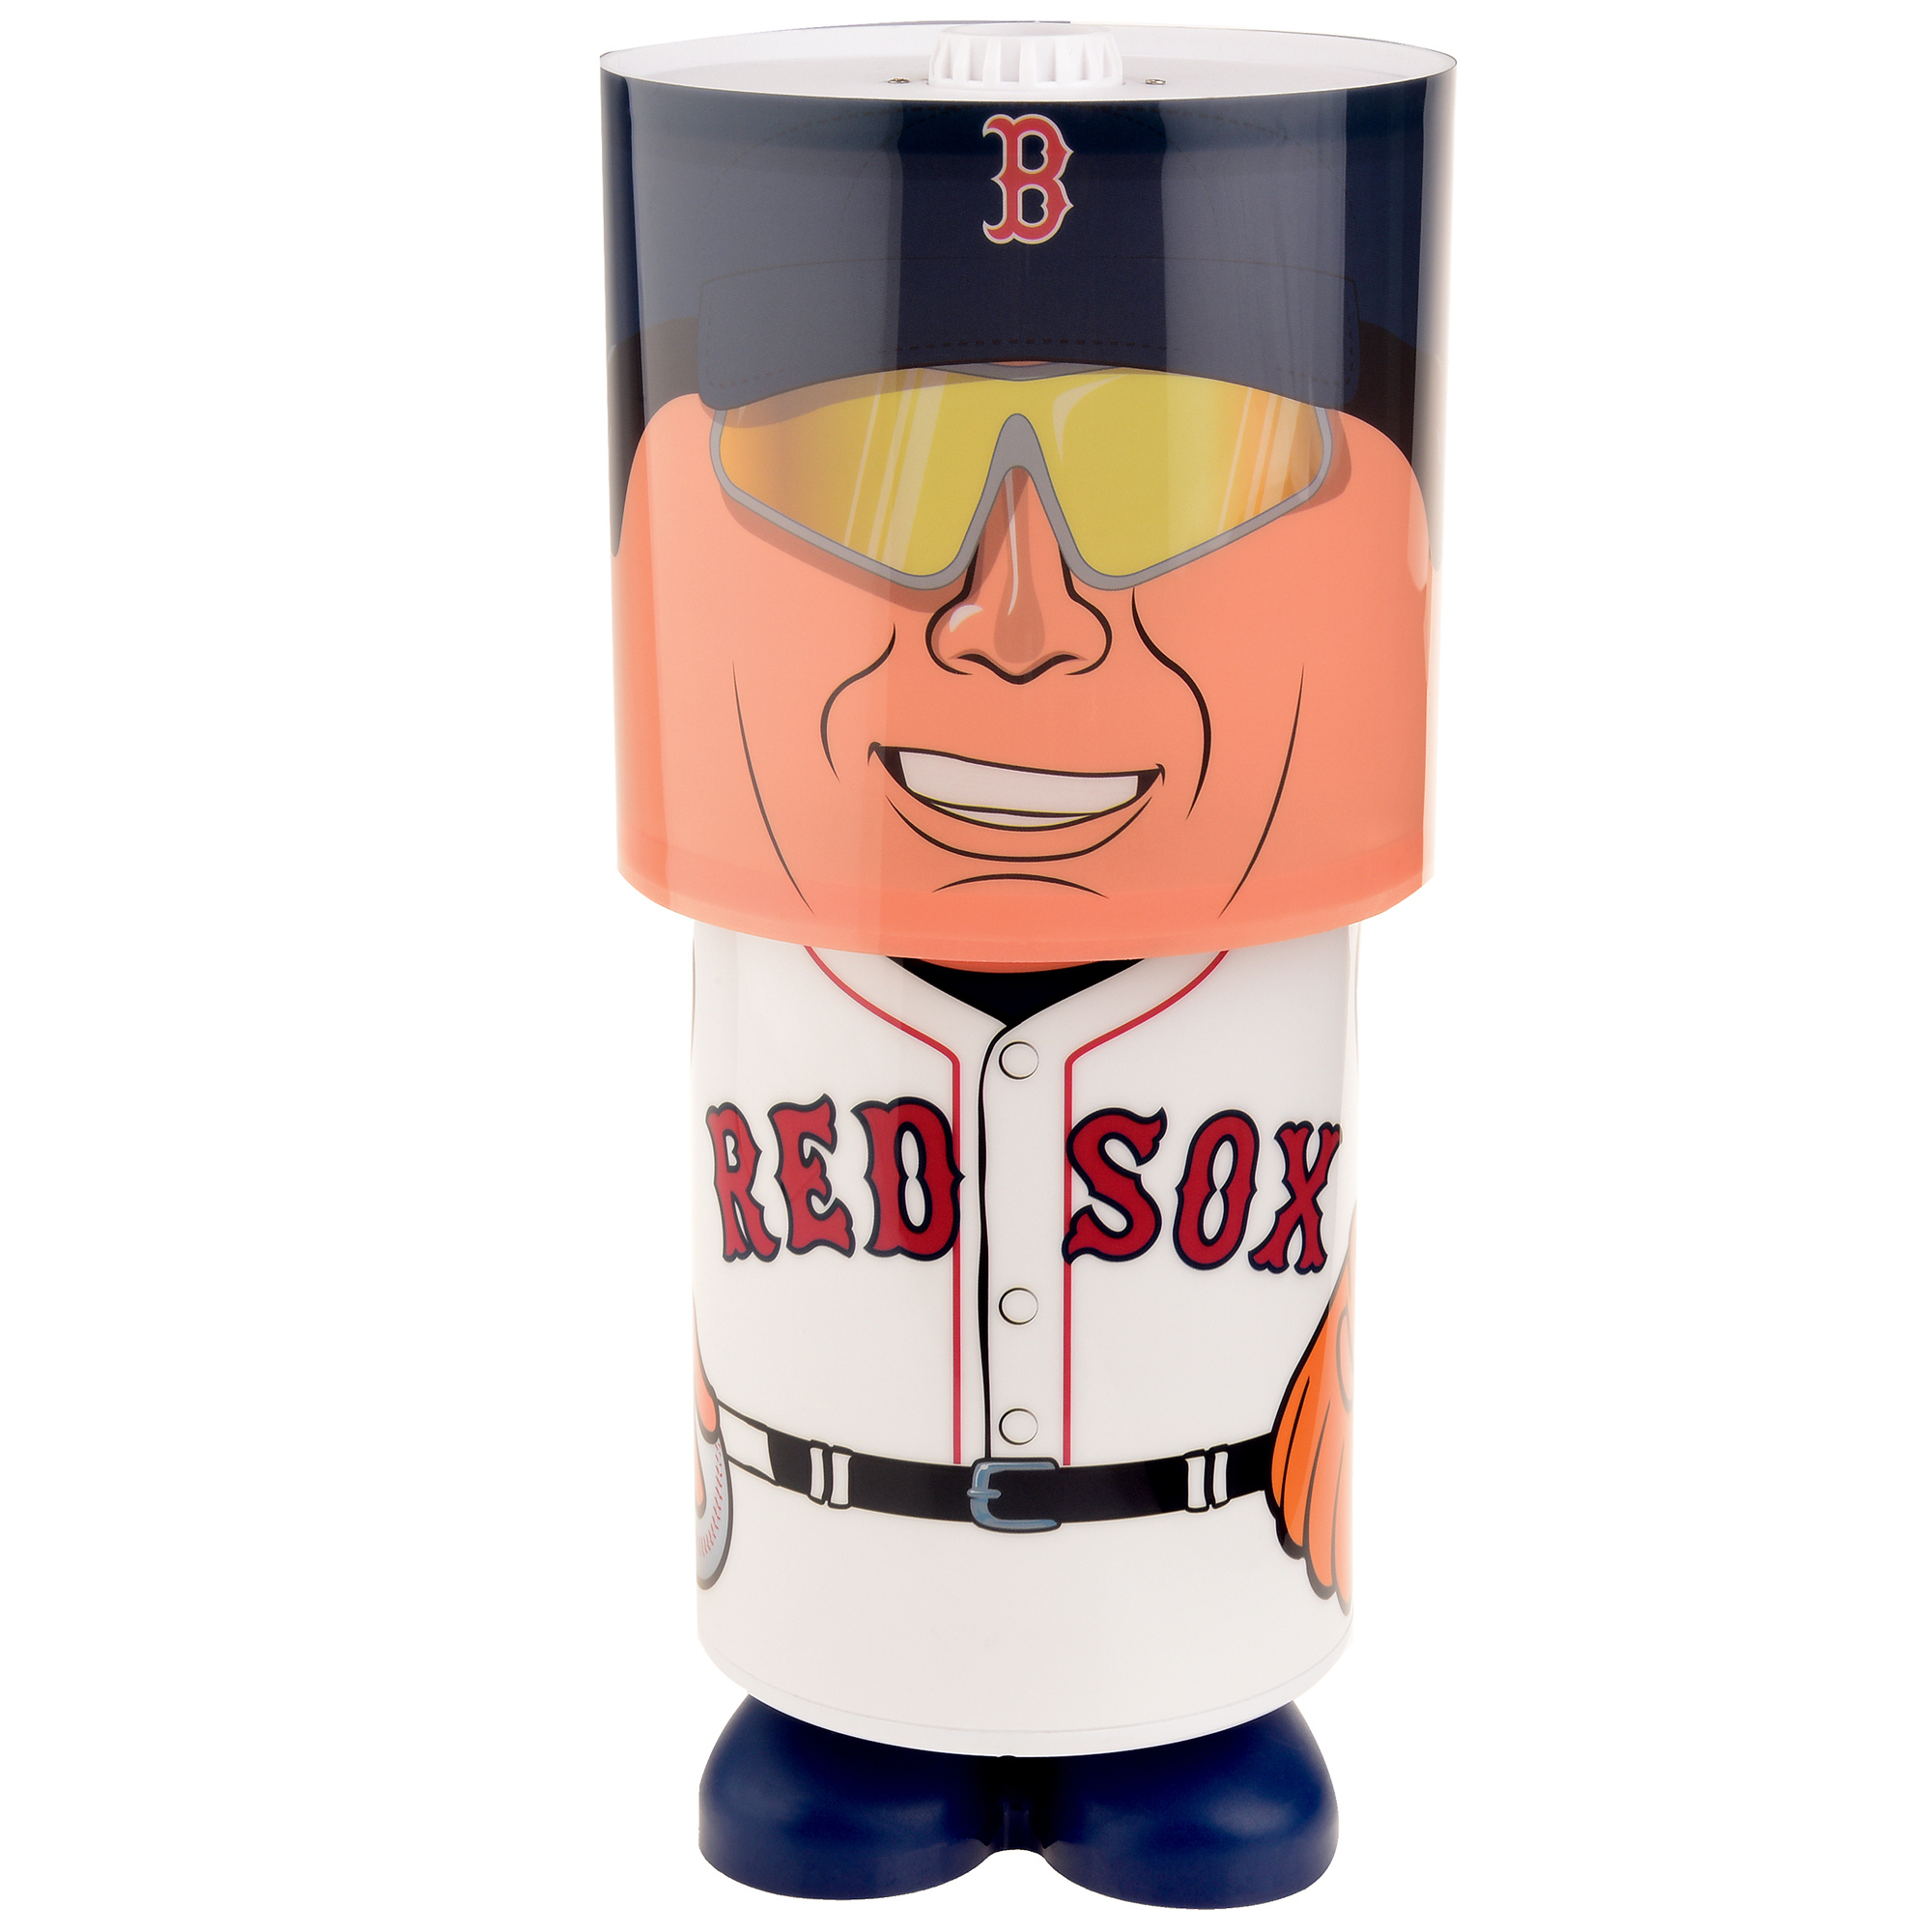 Forever Collectibles Boston Red Sox Rotating Desk Lamp - No Size